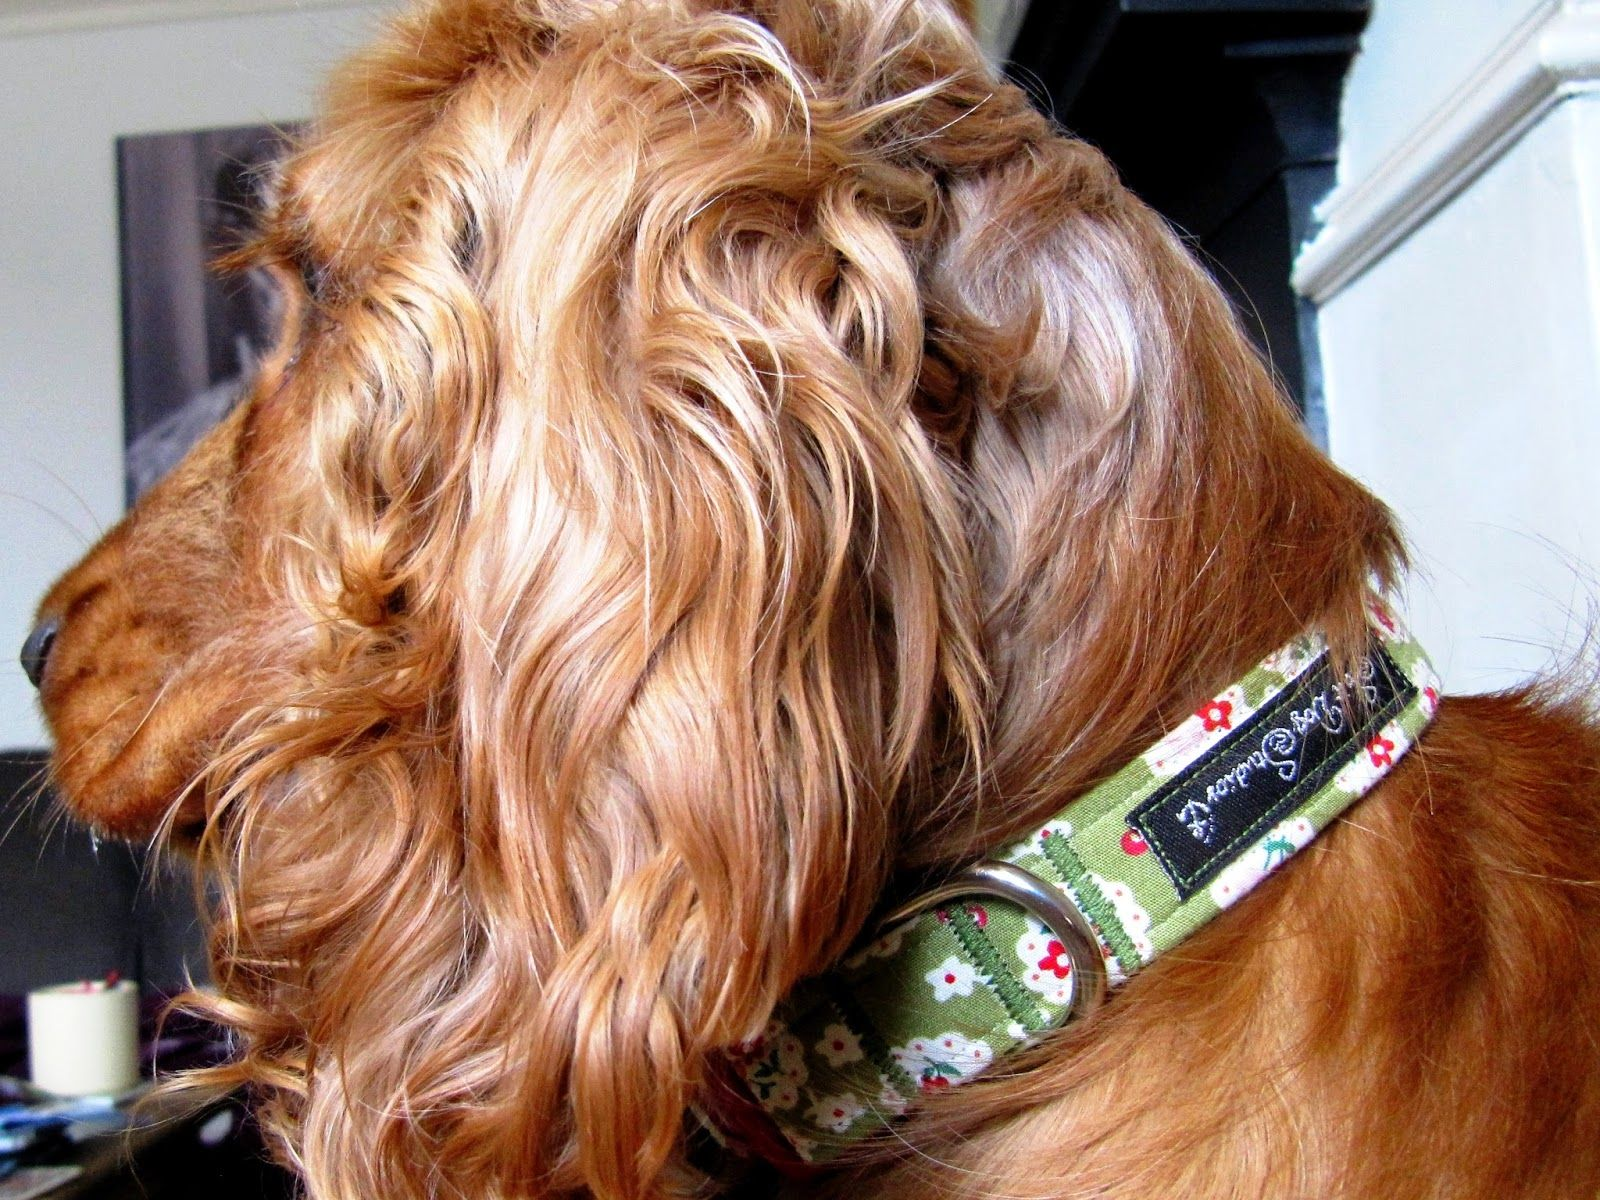 Product Review: Salt Dog Studios fabric collar - A Spaniel's Tail